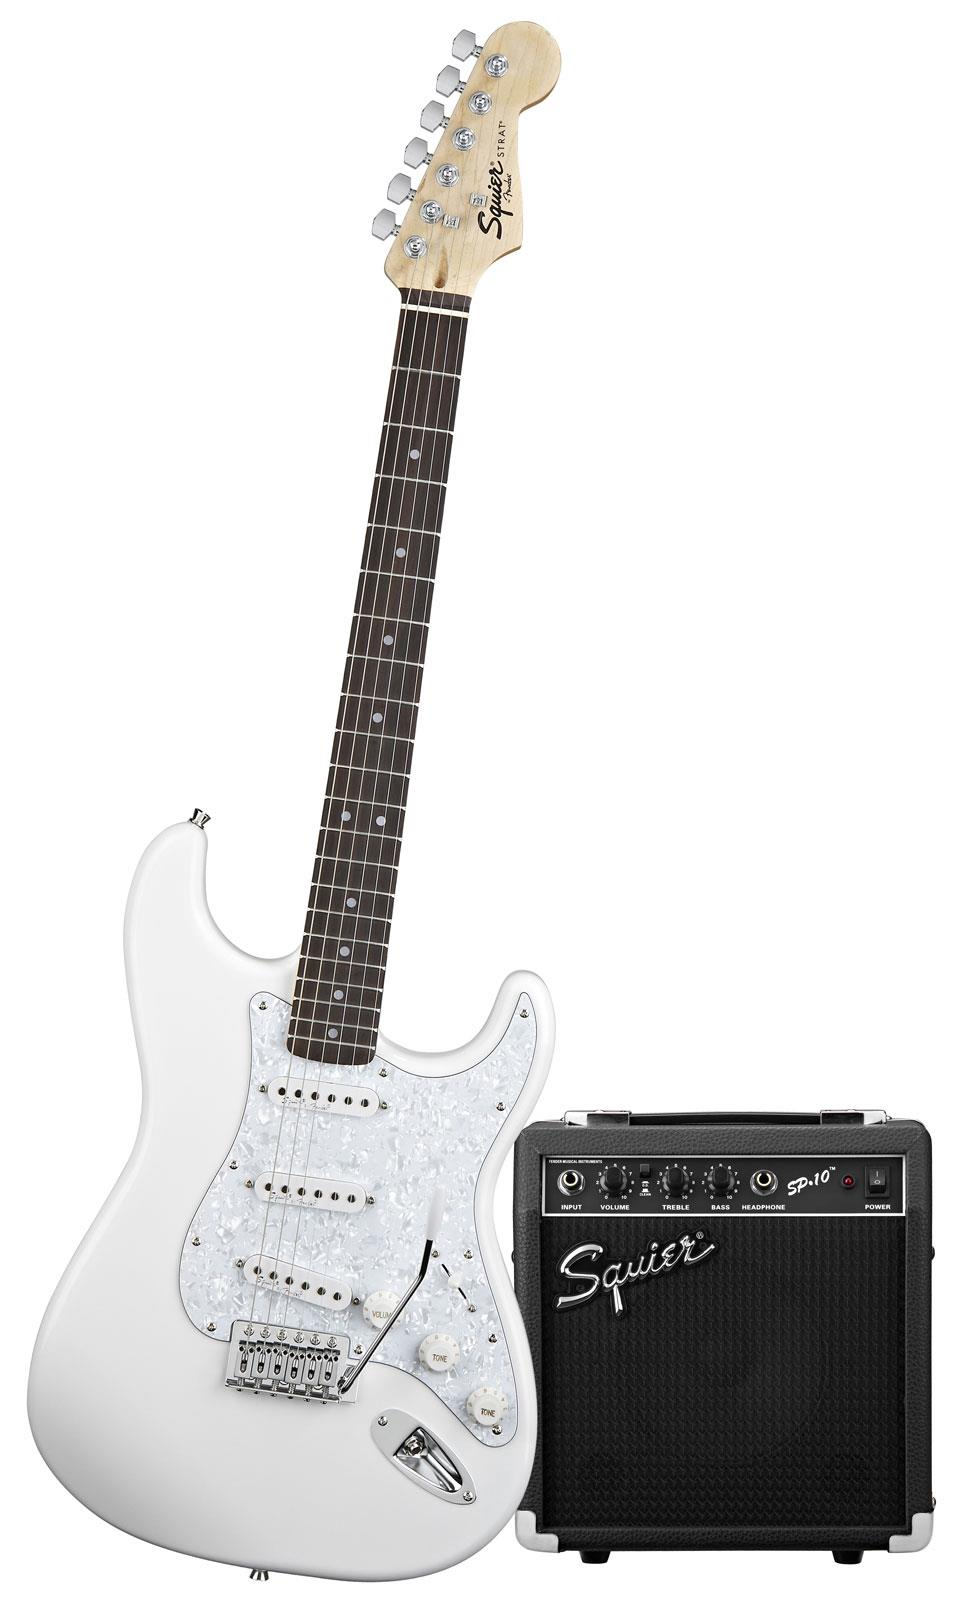 squier sp10 strat pack arctic white keymusic. Black Bedroom Furniture Sets. Home Design Ideas